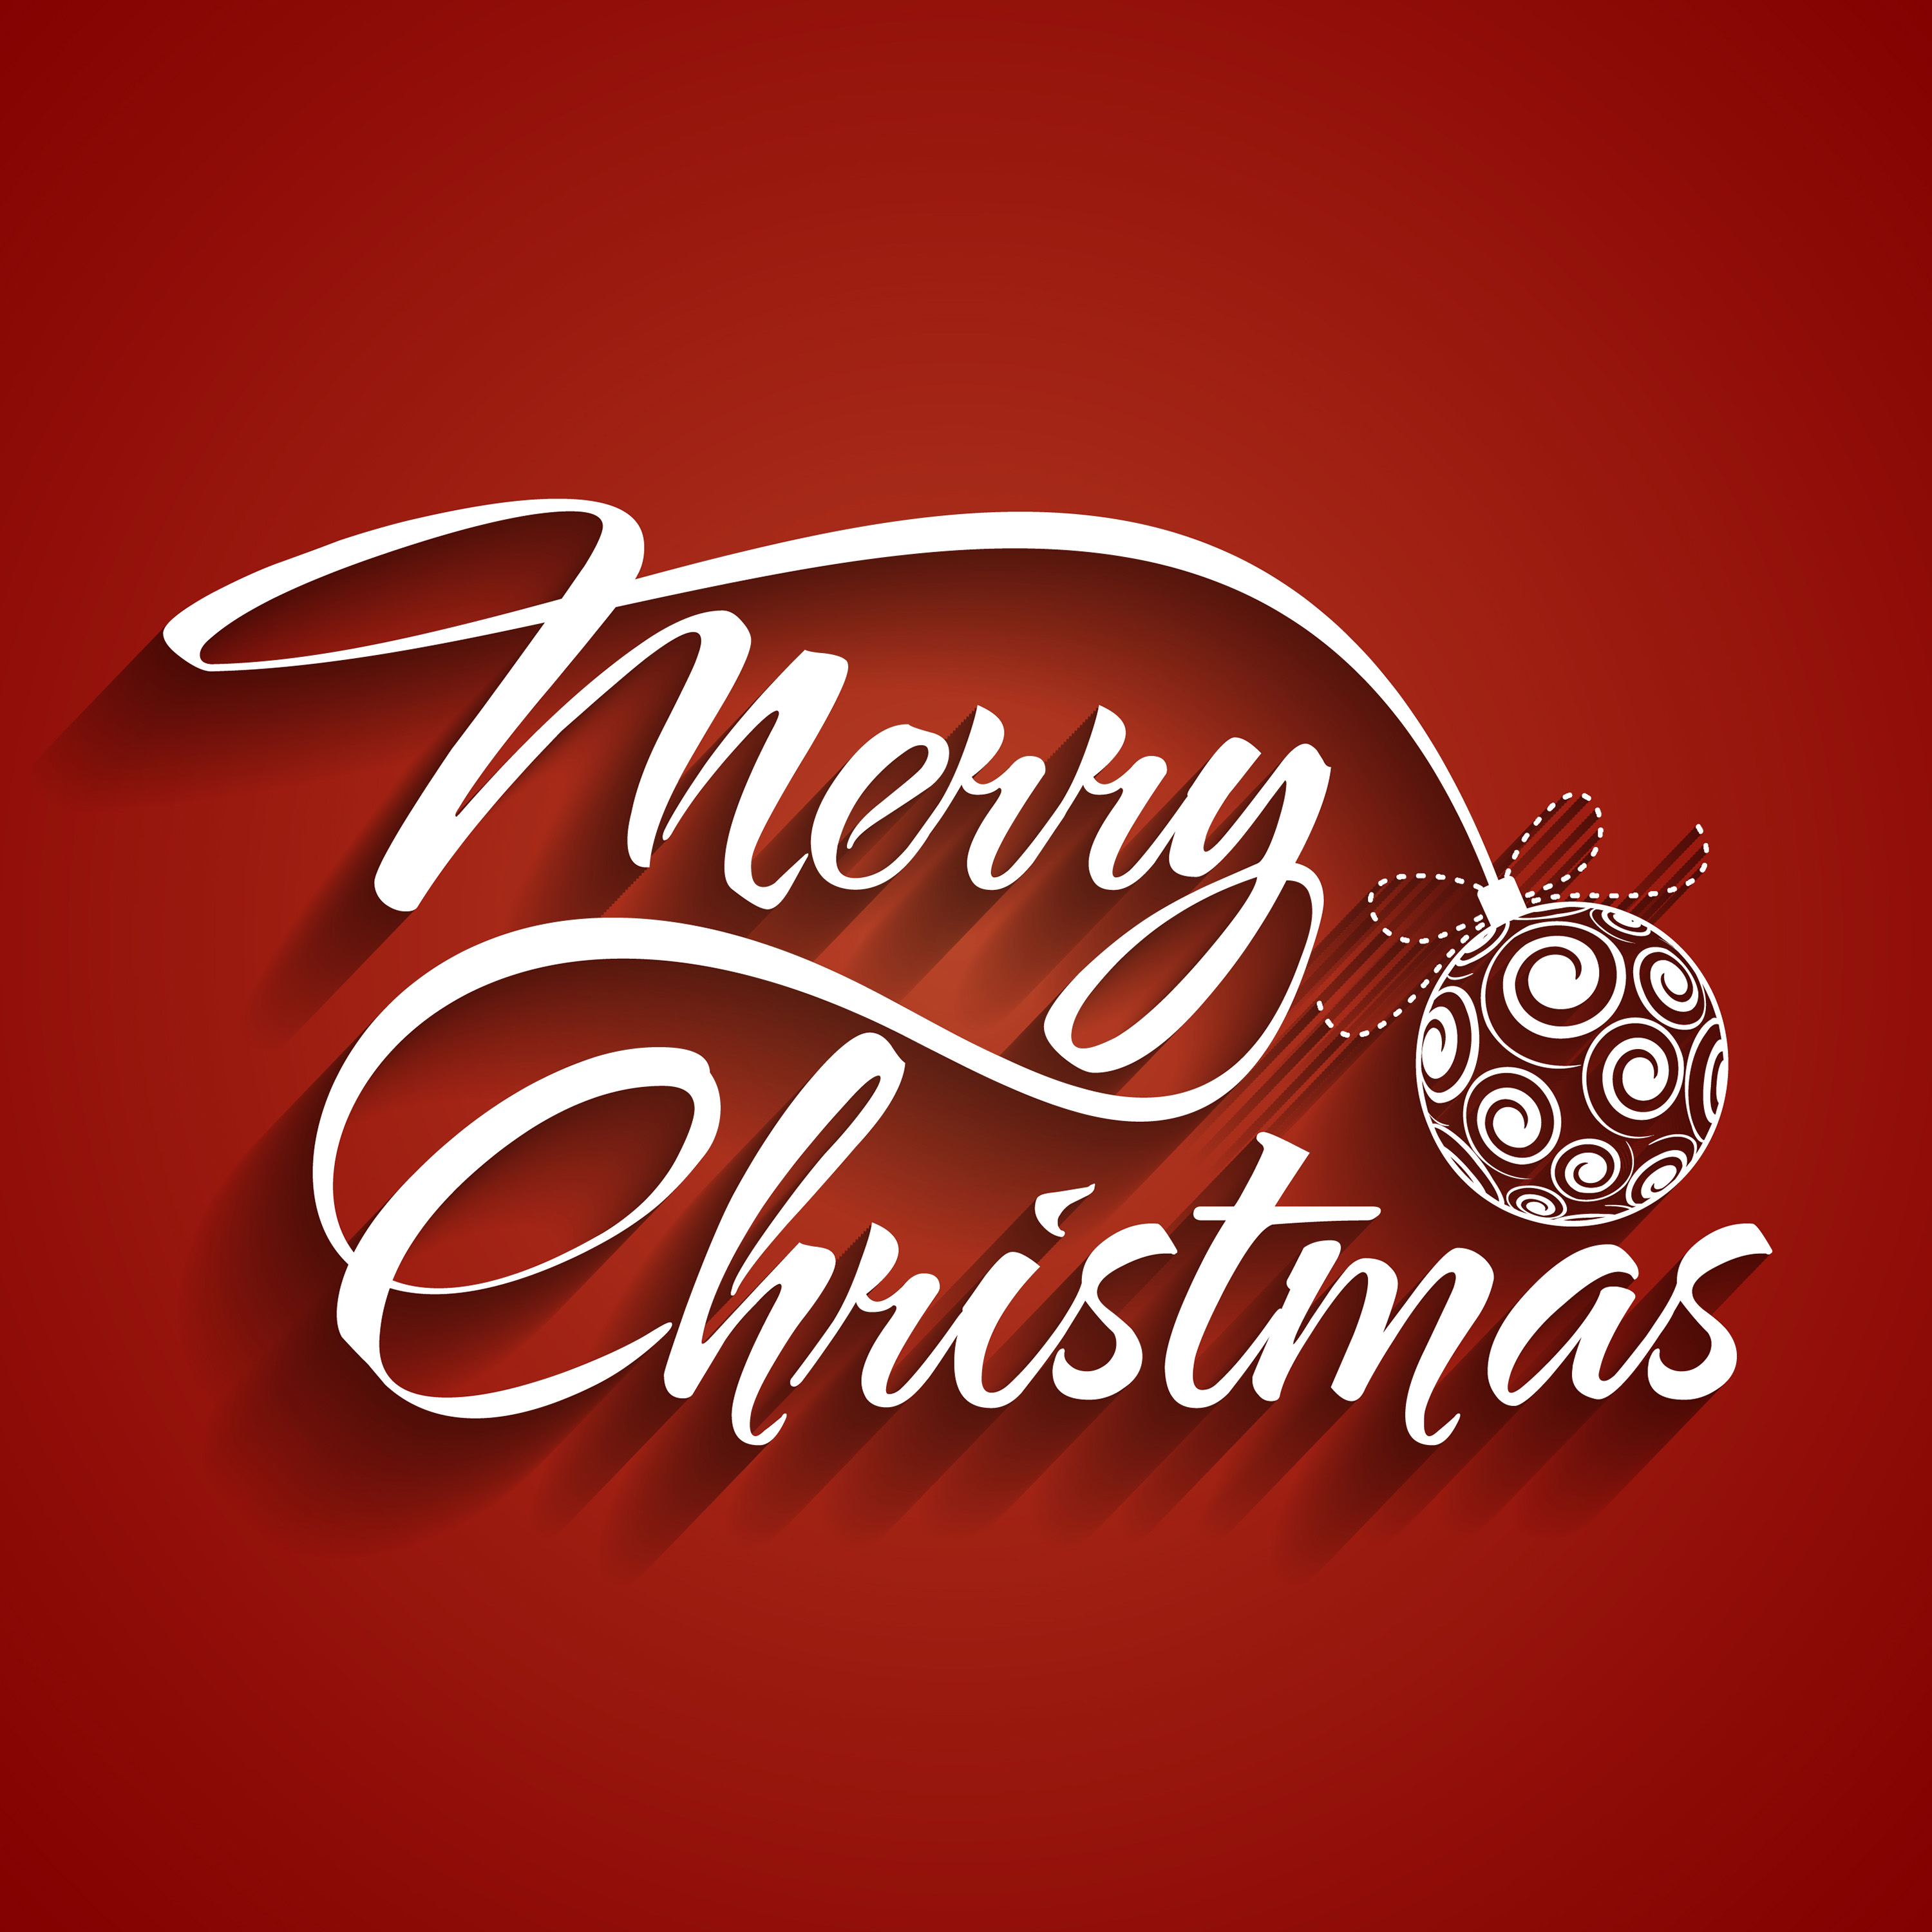 Letters Merry Christmas Metal Cutting Dies Stencil for DIY Scrapbooking Photo